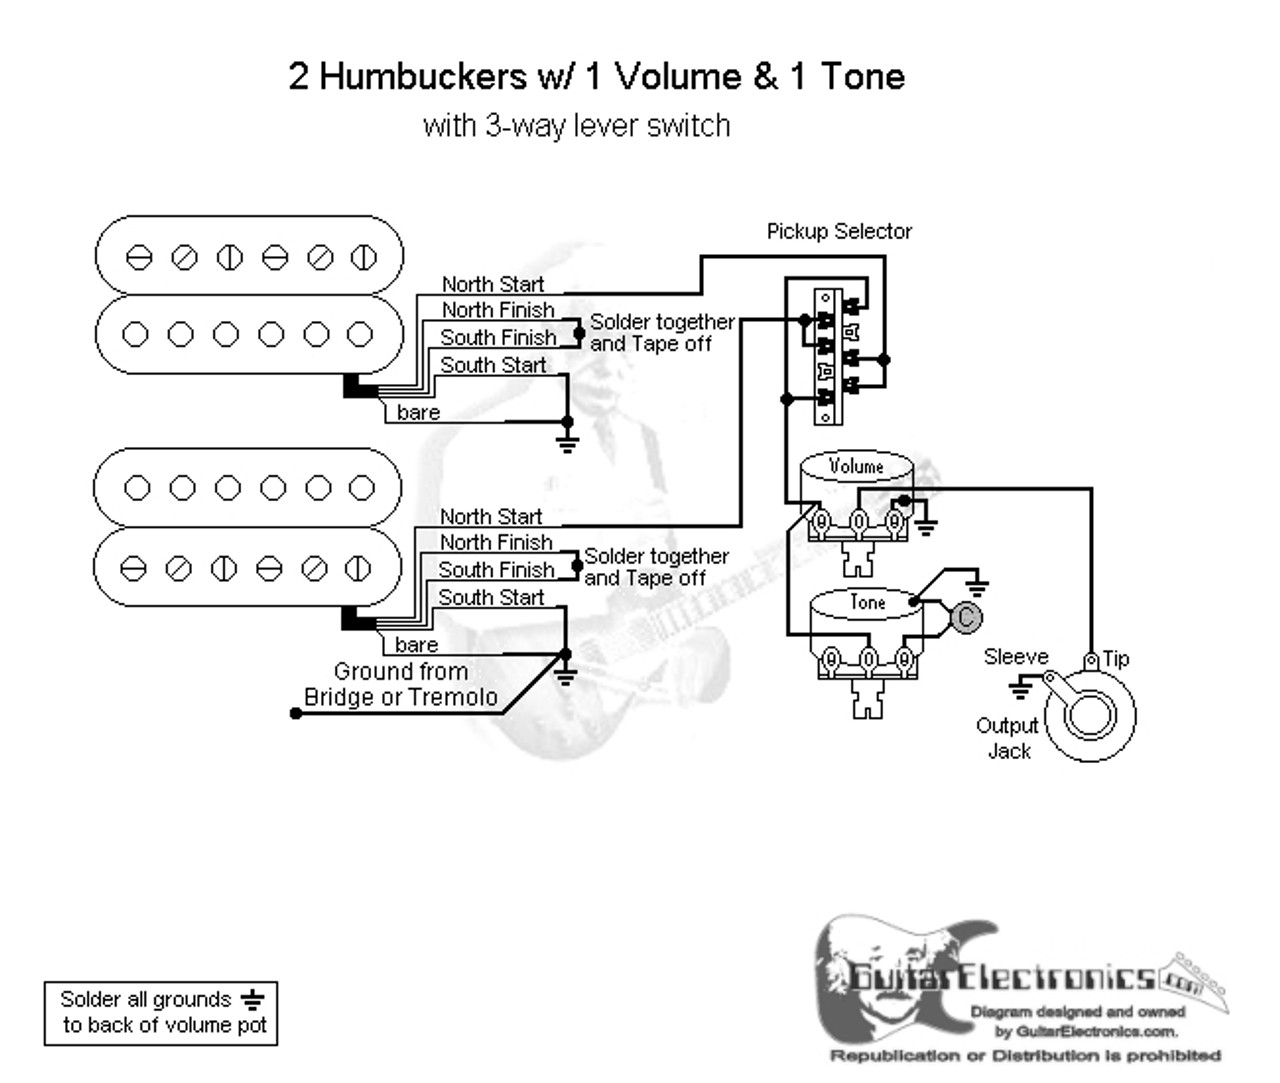 Guitar Wiring Diagram 2 Humbucker